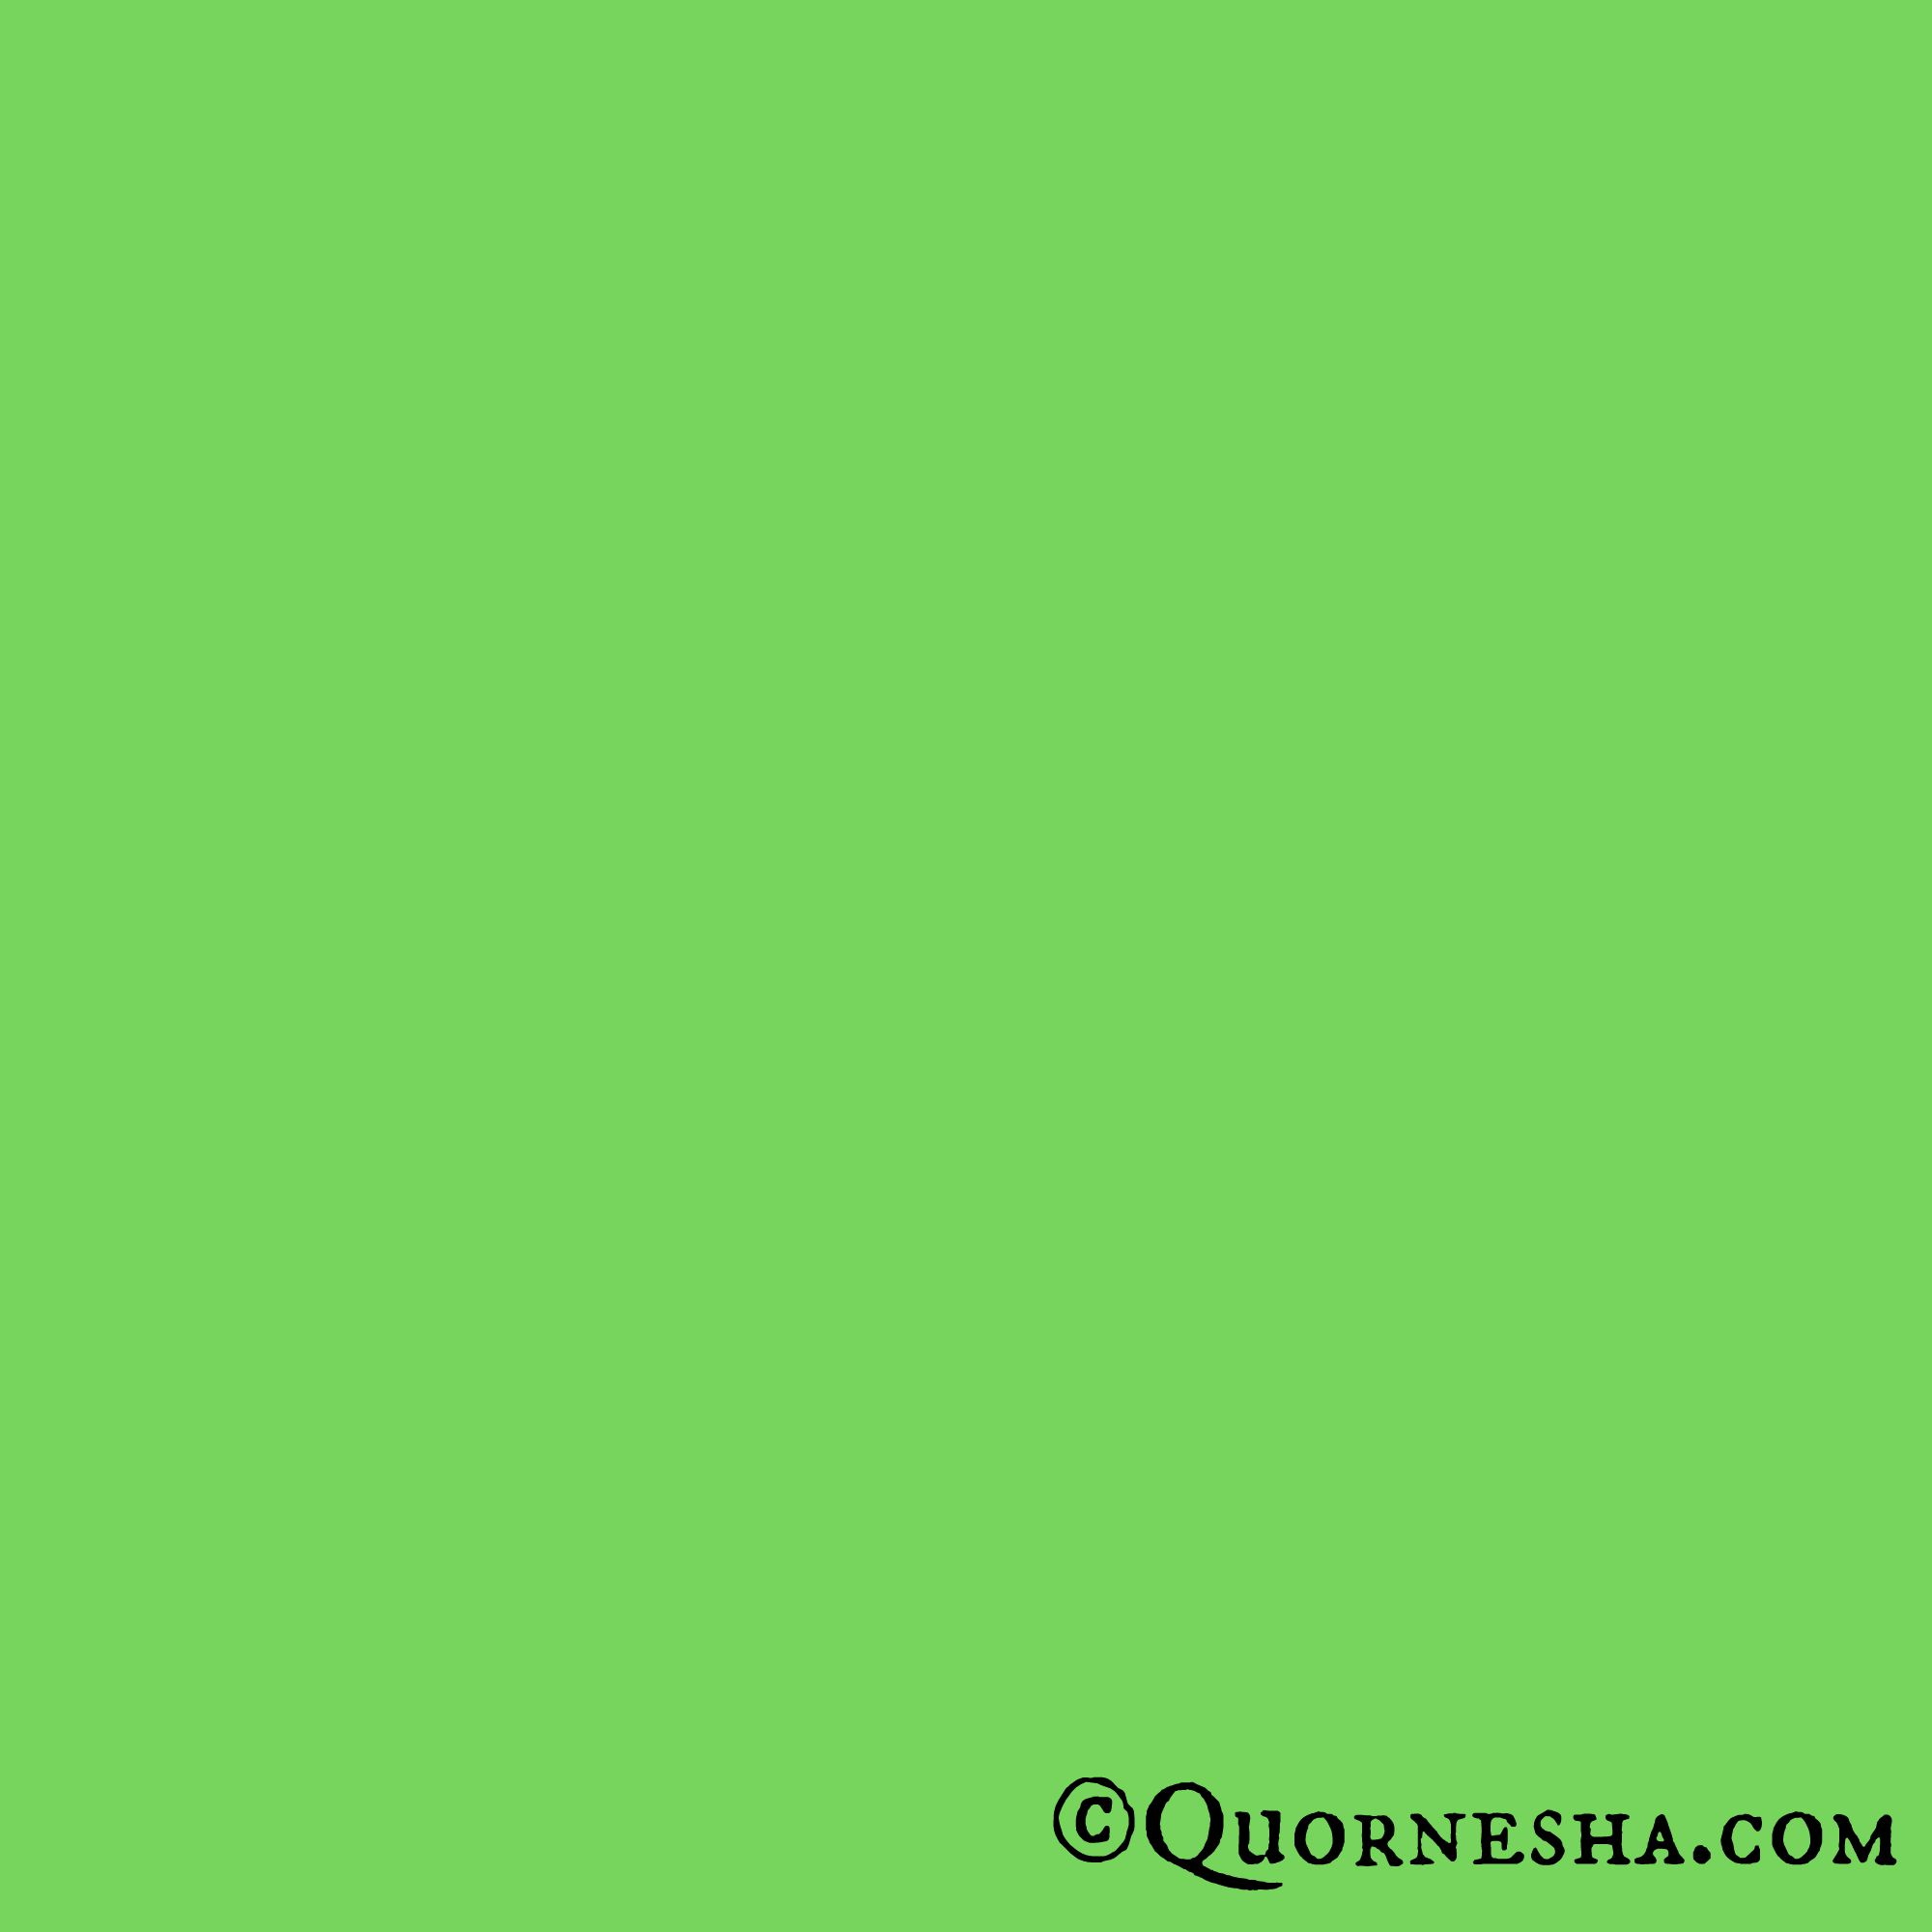 The color green symbolic meaning whispers channels prophecies about me biocorpaavc Image collections